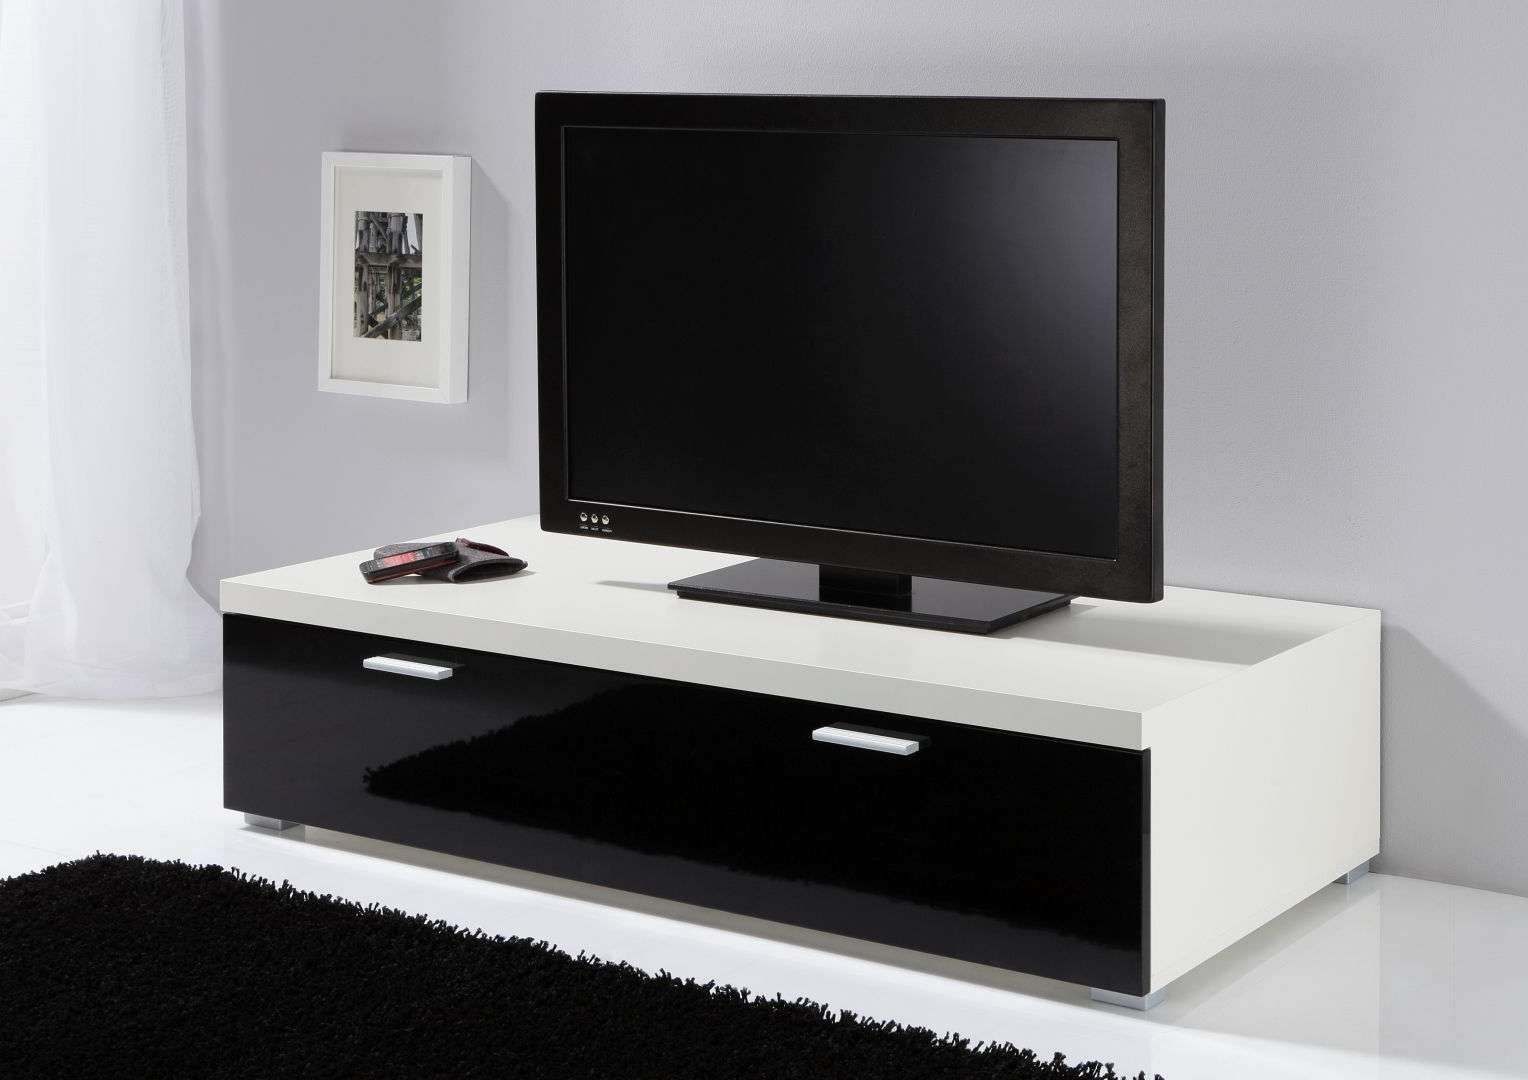 Modanuvo Low Tv Unit, Tv Cabinet, Tv Stand Off White & Black High Within White Tv Cabinets (View 20 of 20)